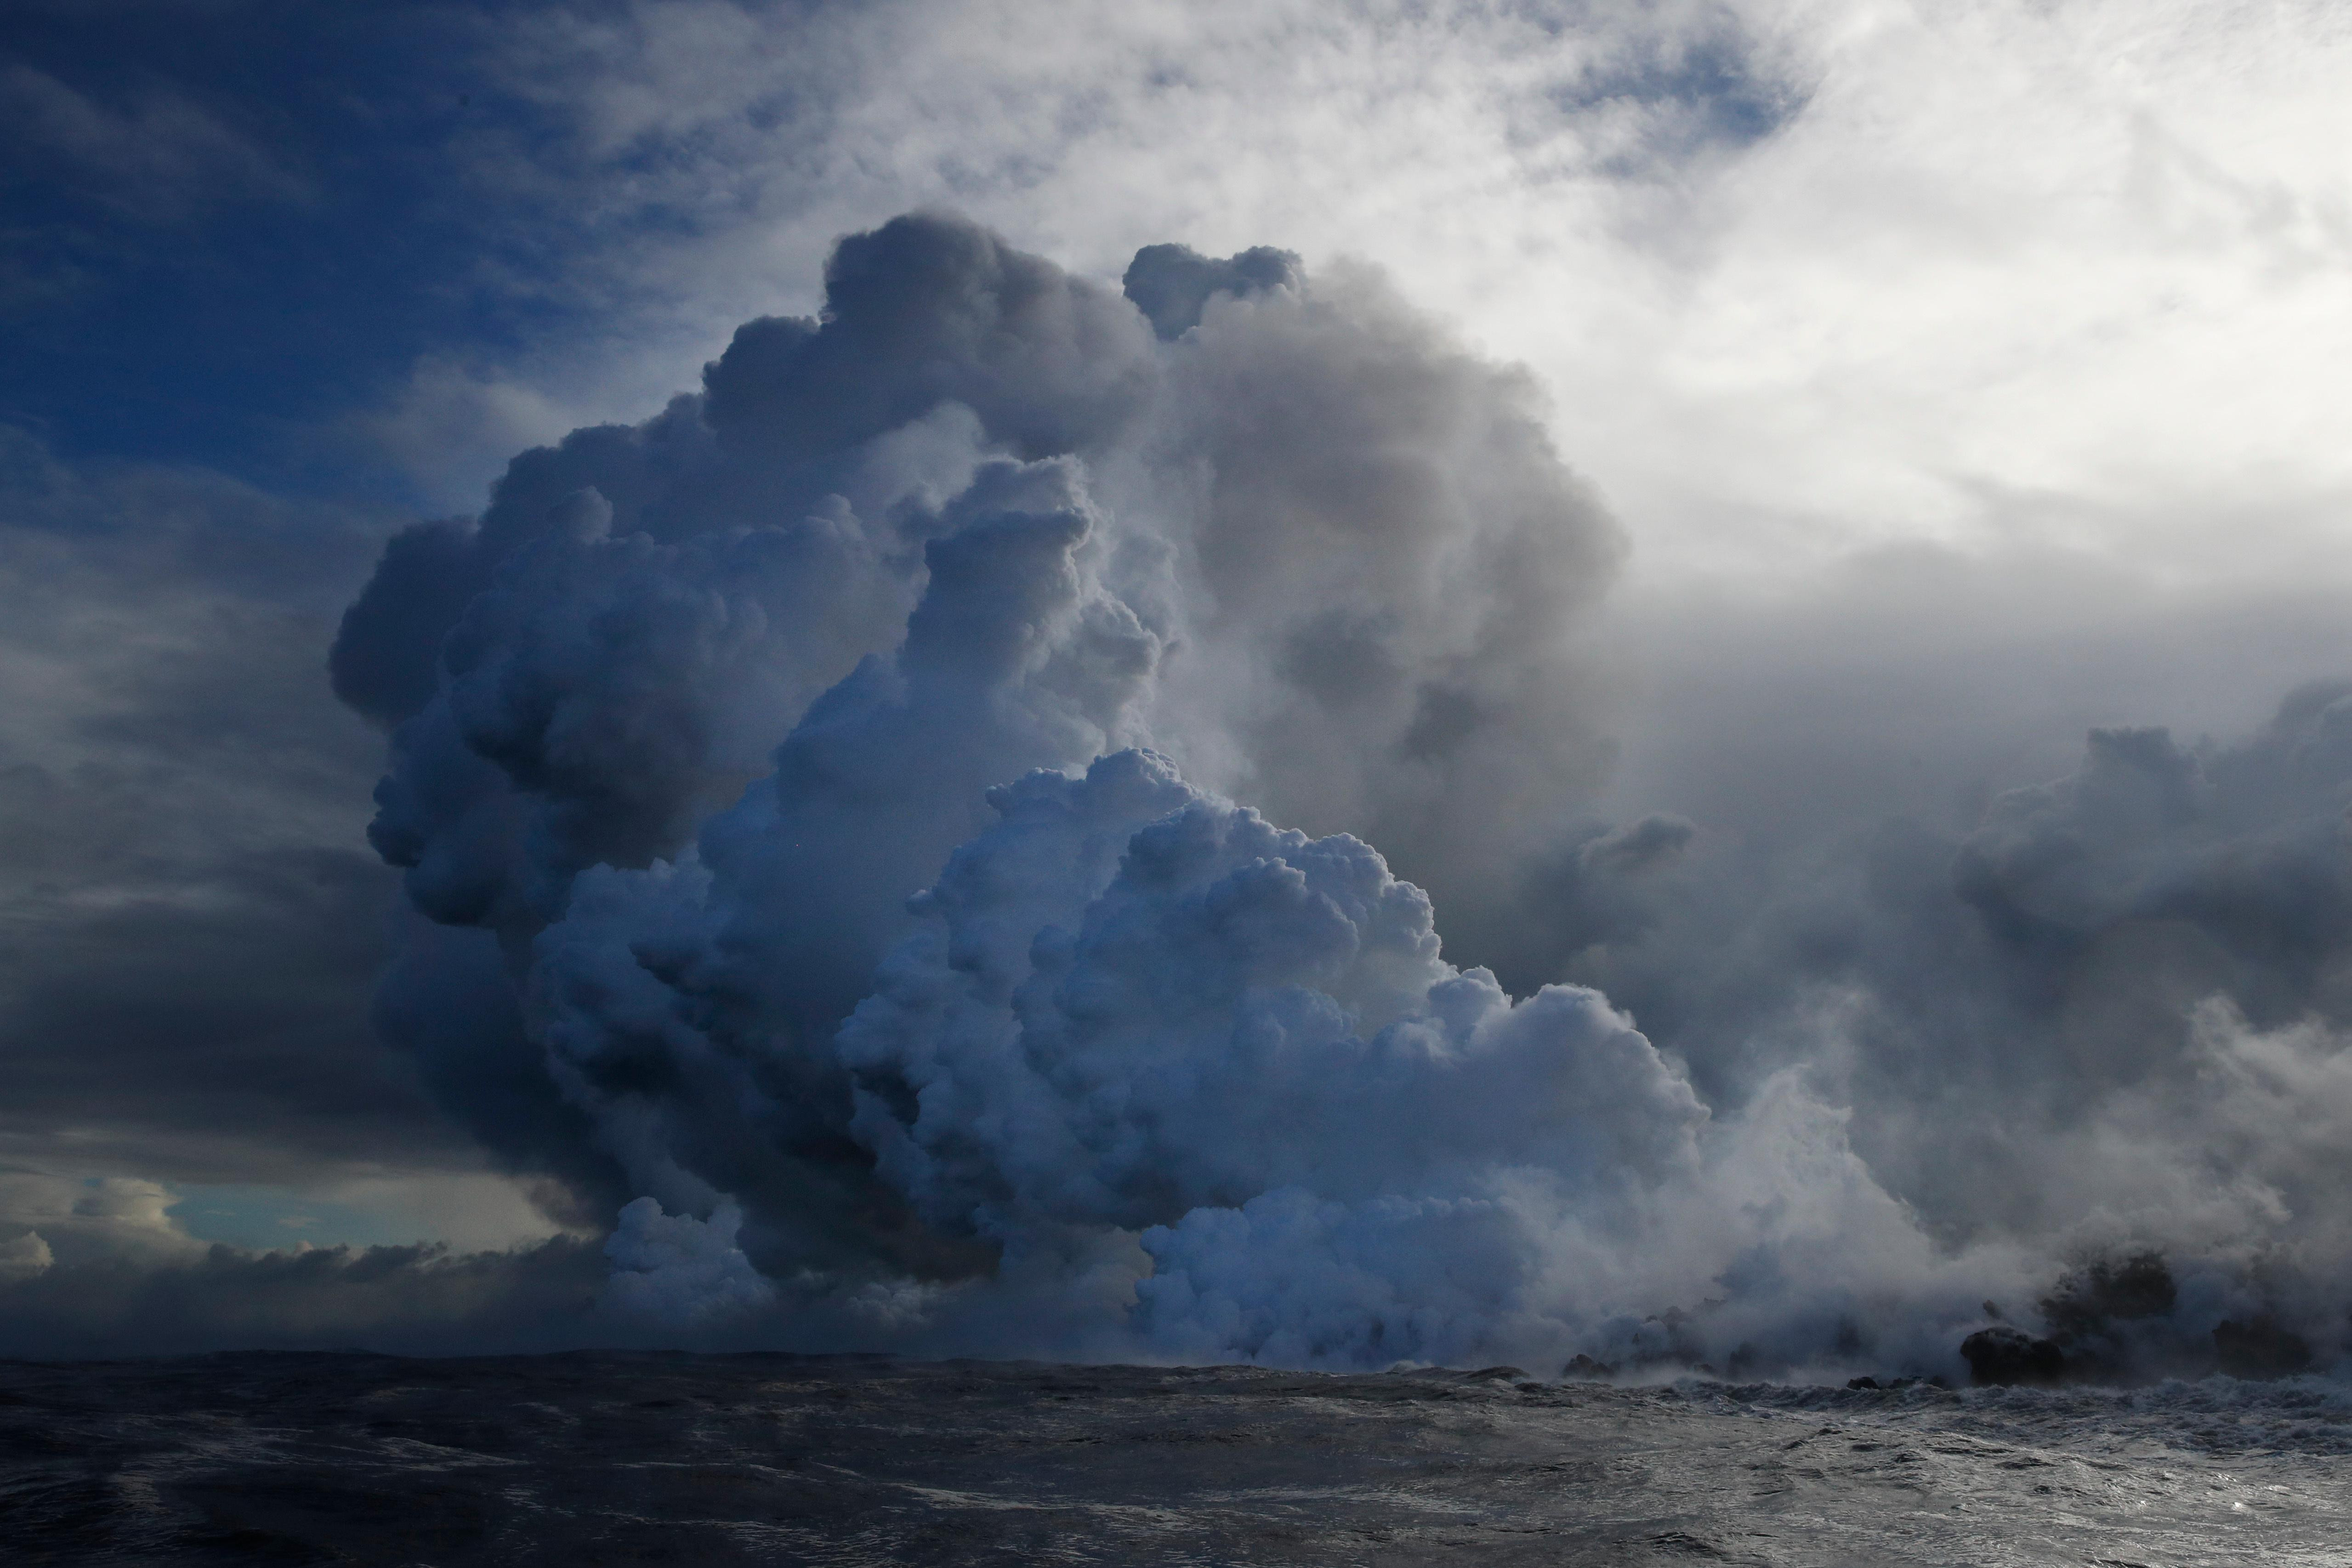 Plumes of steam rise as lava enters the ocean near Pahoa, Hawaii, Sunday, May 20, 2018. Kilauea volcano that is oozing, spewing and exploding on Hawaii's Big Island has gotten more hazardous in recent days, with rivers of molten rock pouring into the ocean Sunday and flying lava causing the first major injury. (AP Photo/Jae C. Hong)